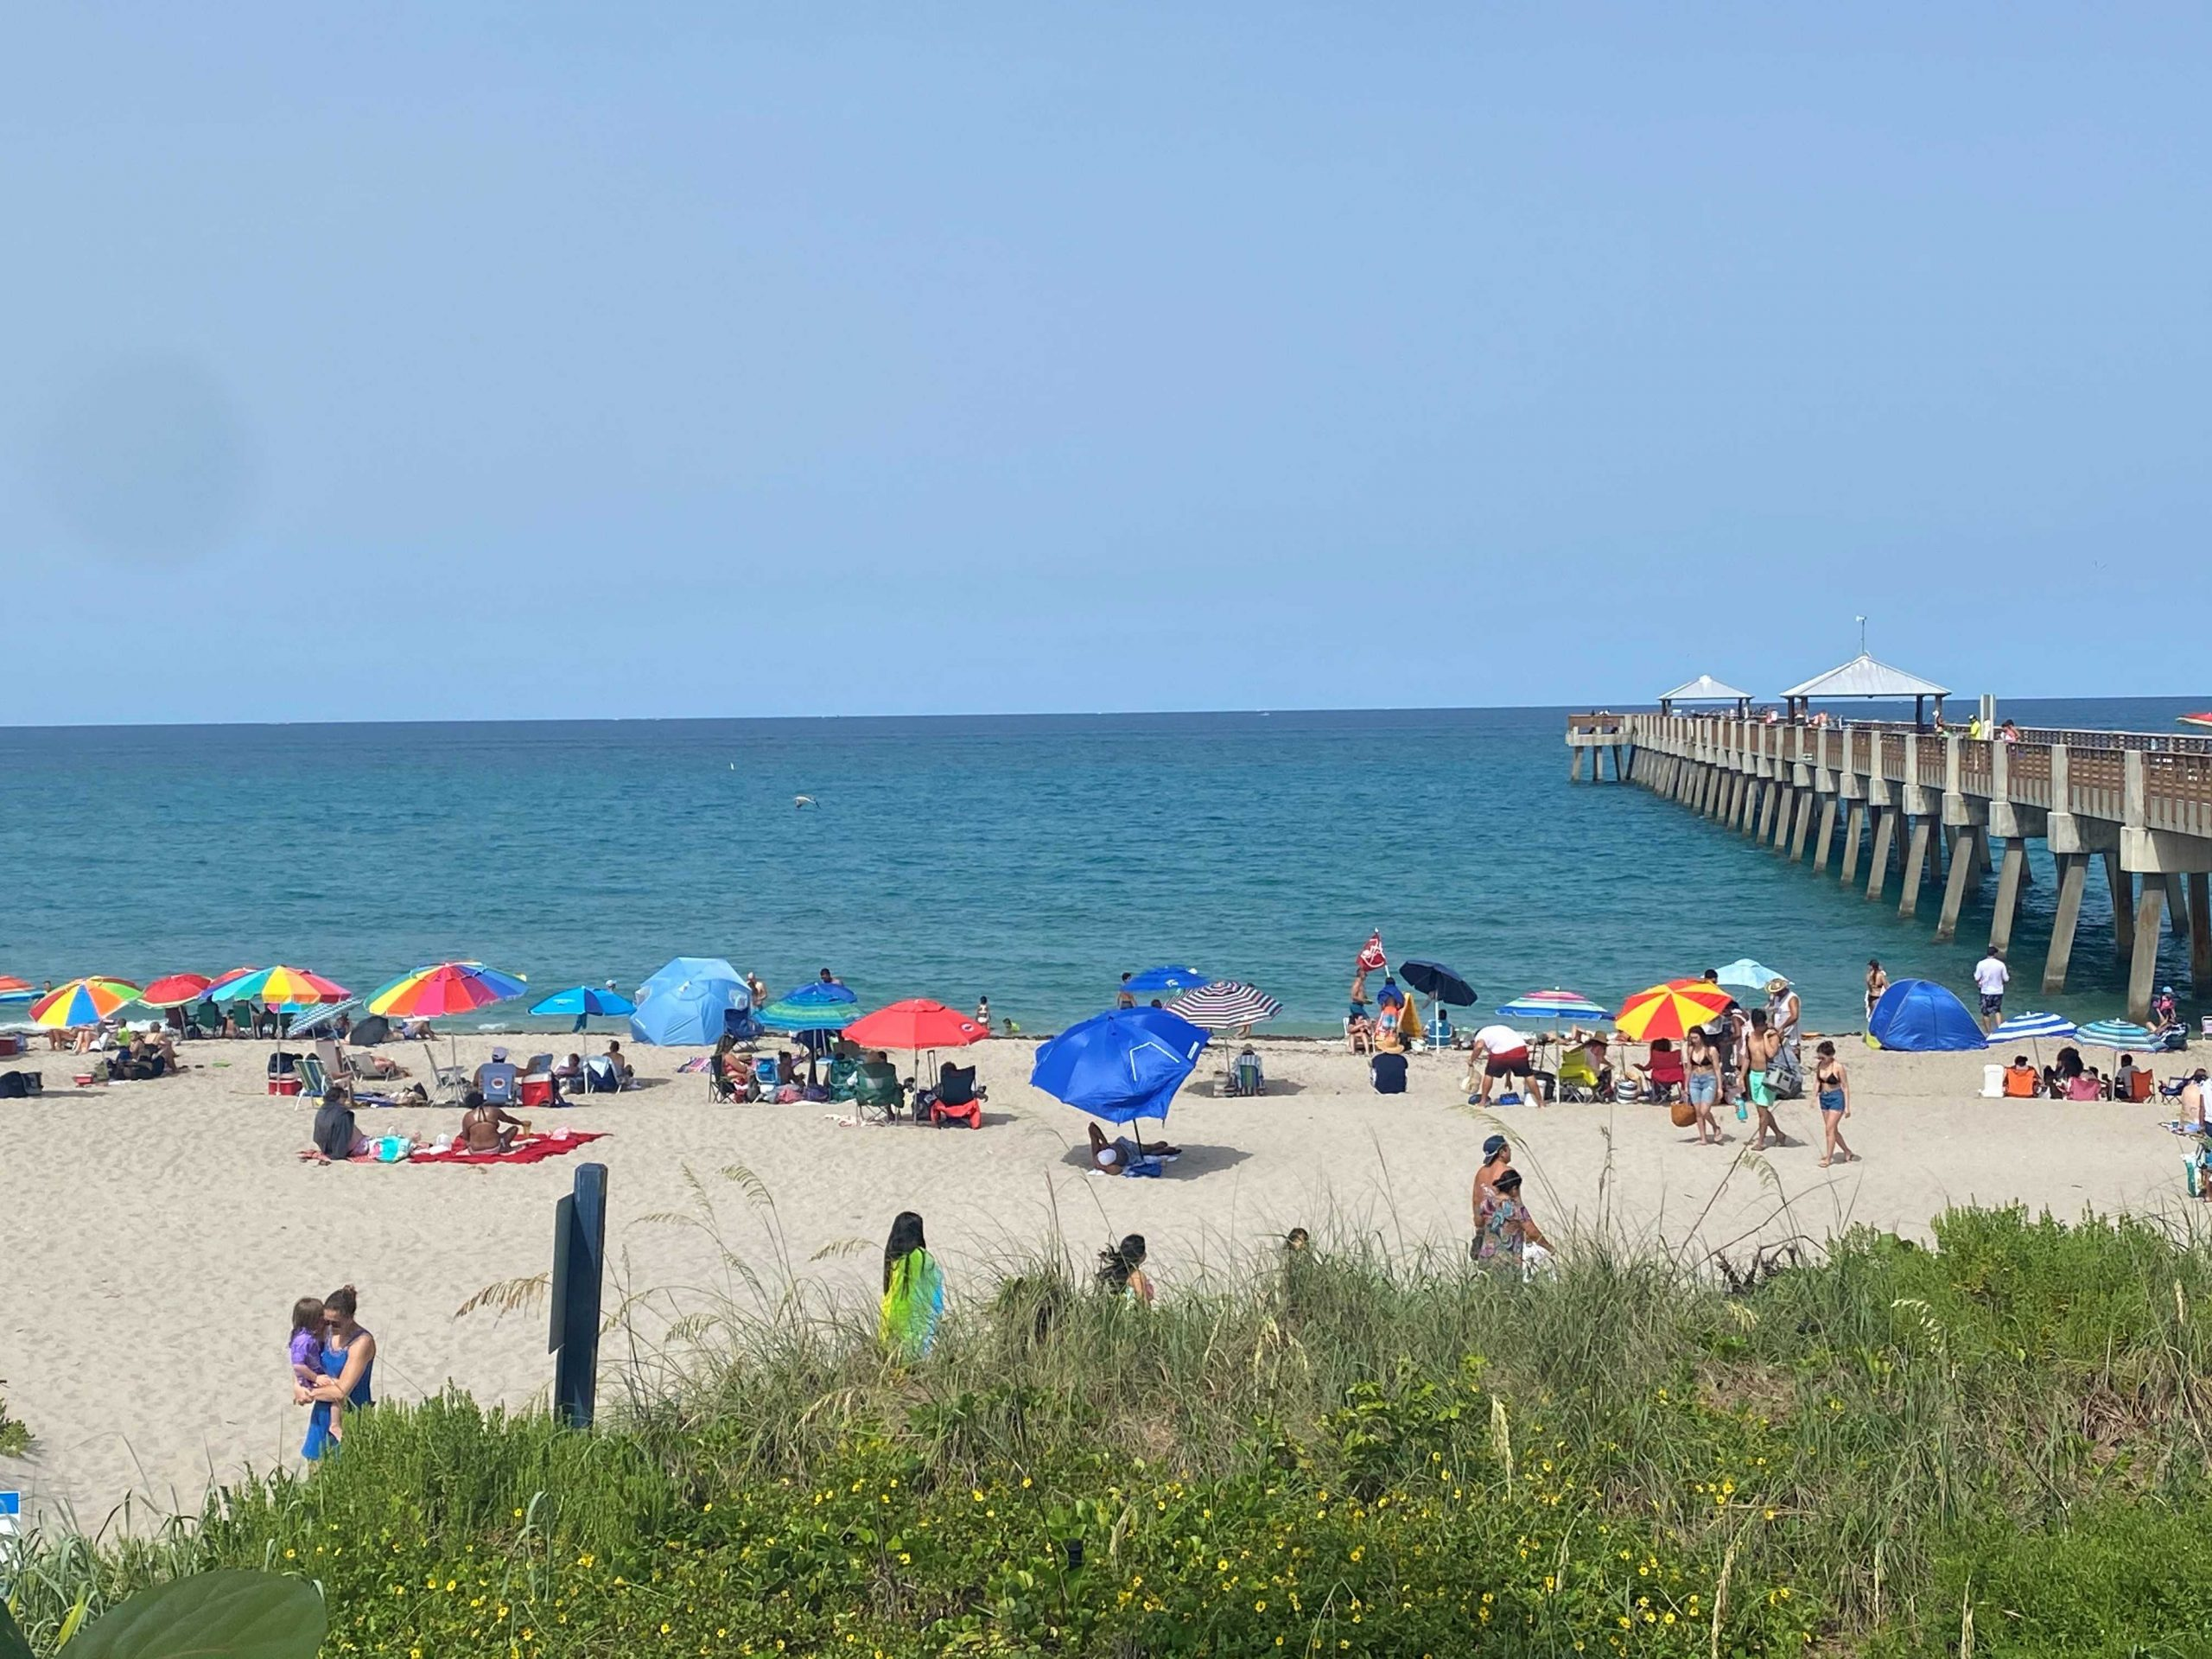 Beaches in Palm Beach County to close over the holiday weekend